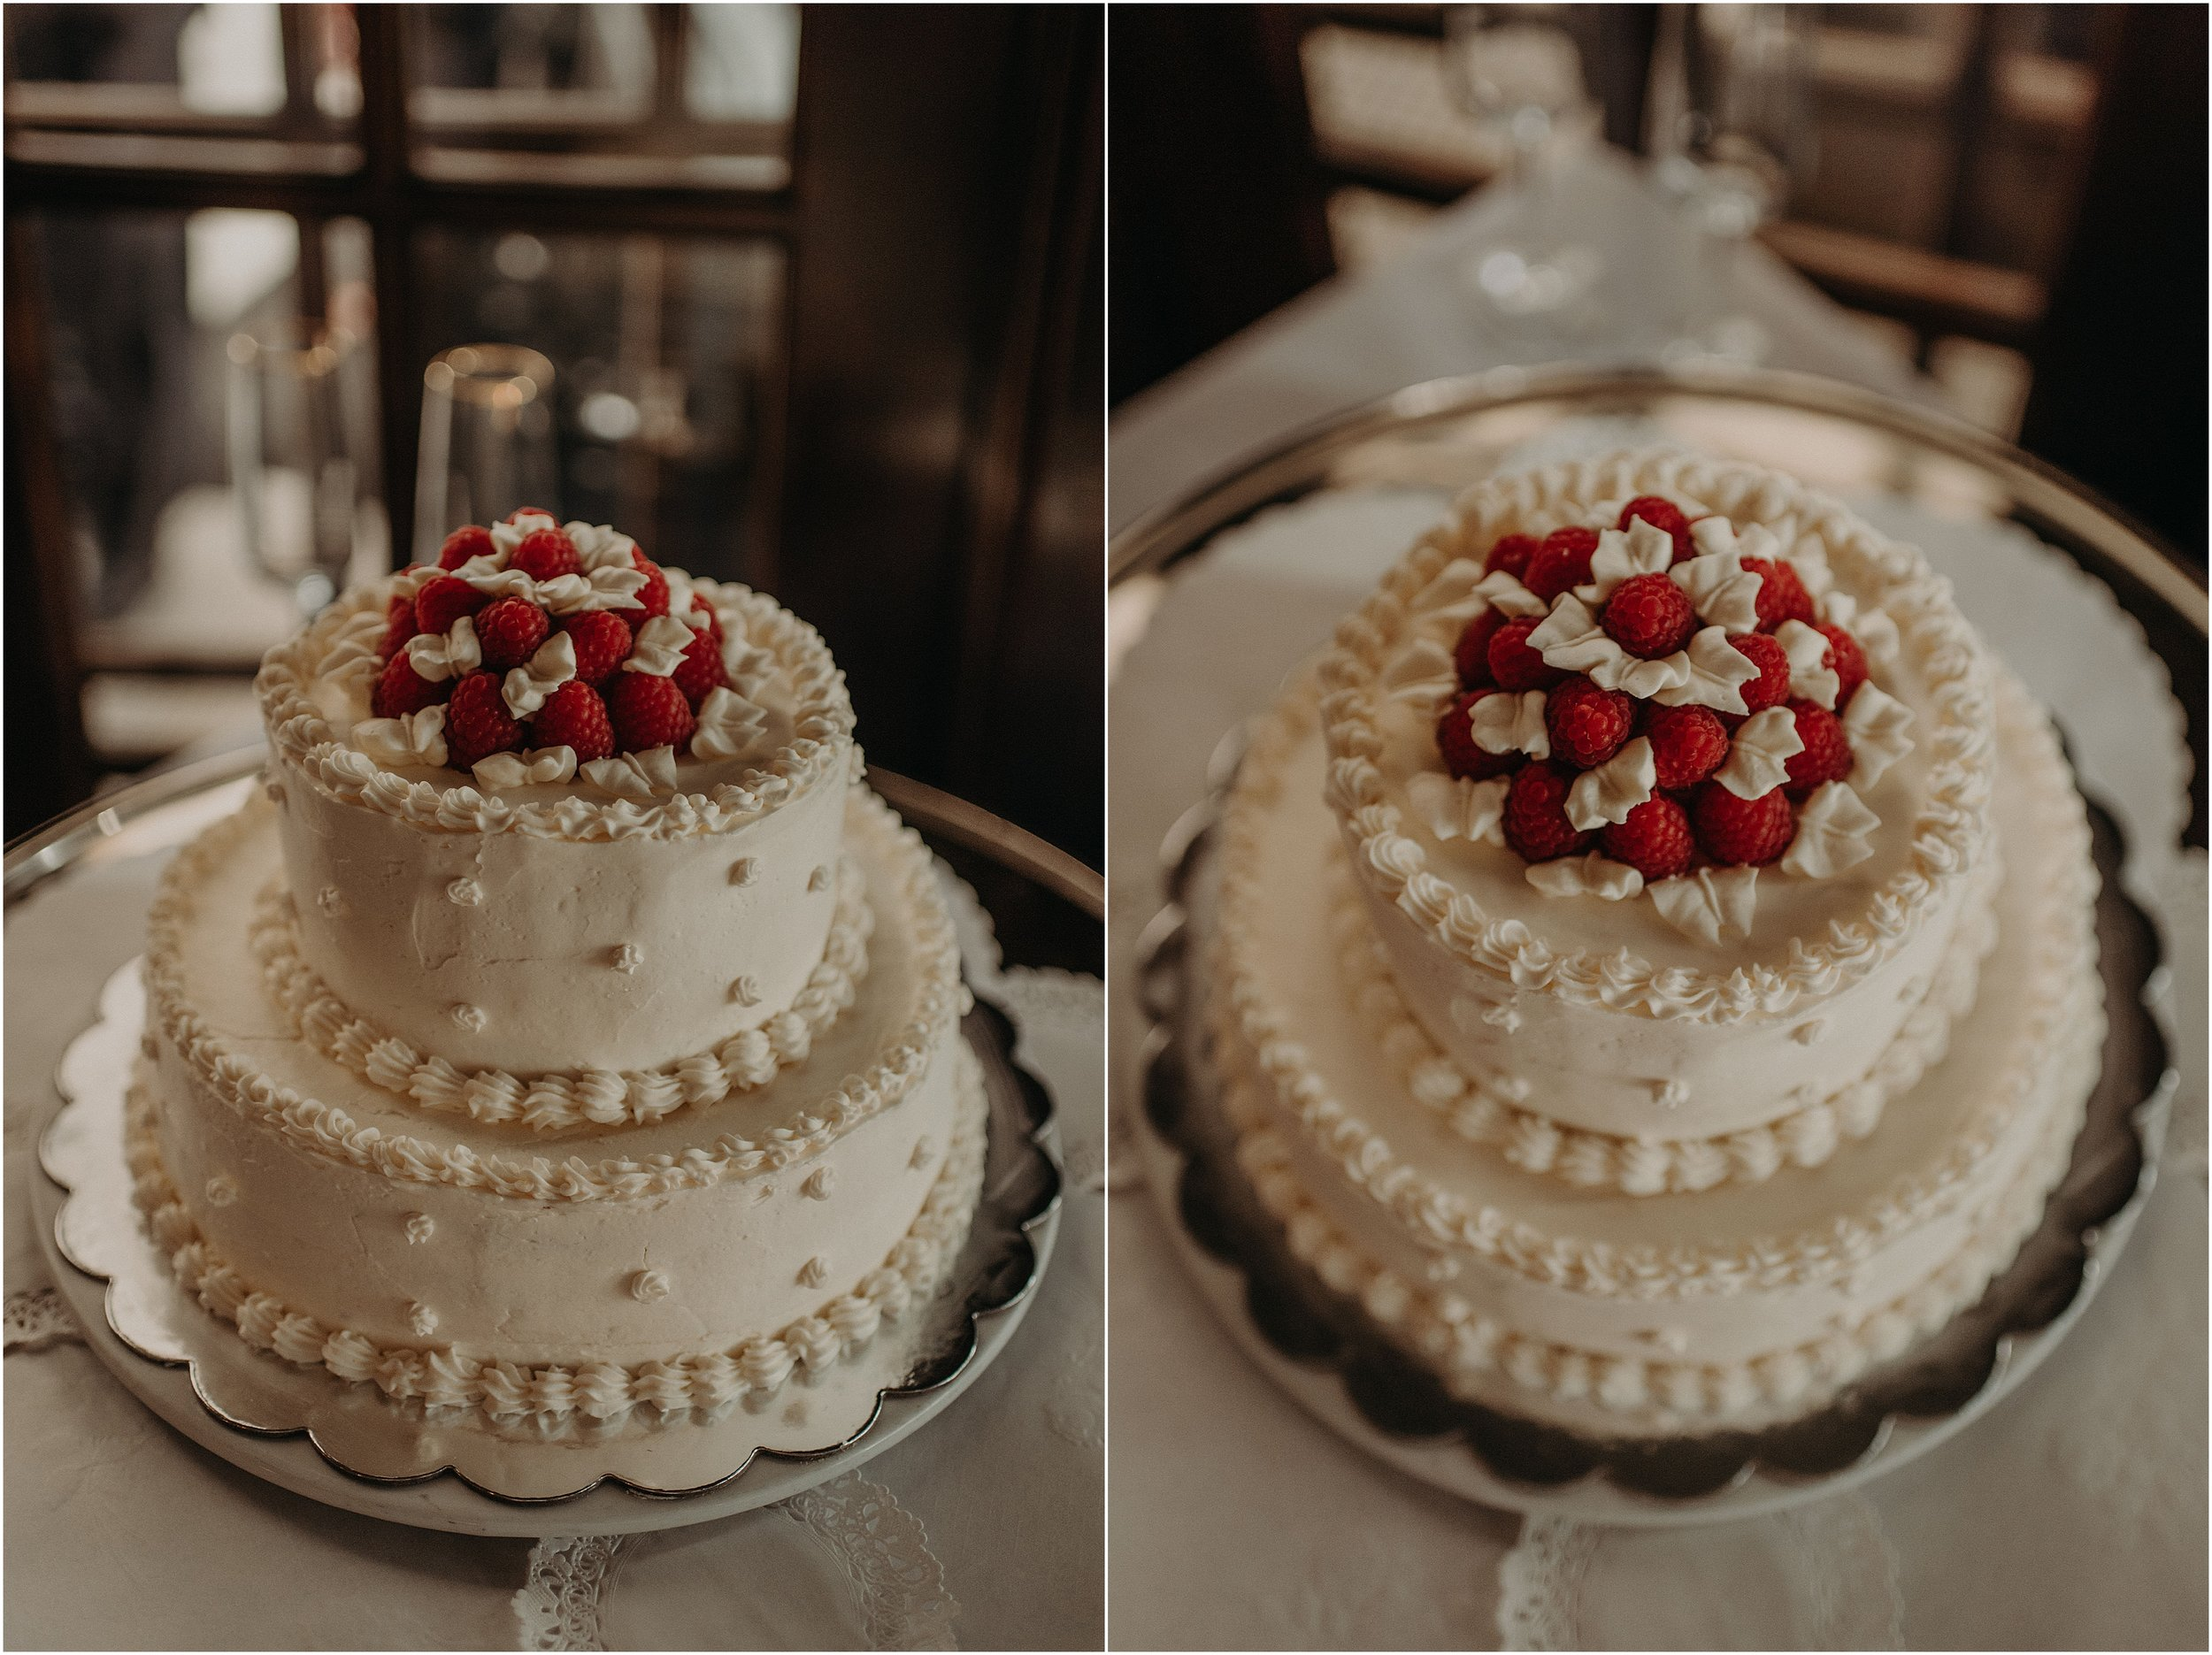 Vanilla almond and raspberry two-tiered wedding cake